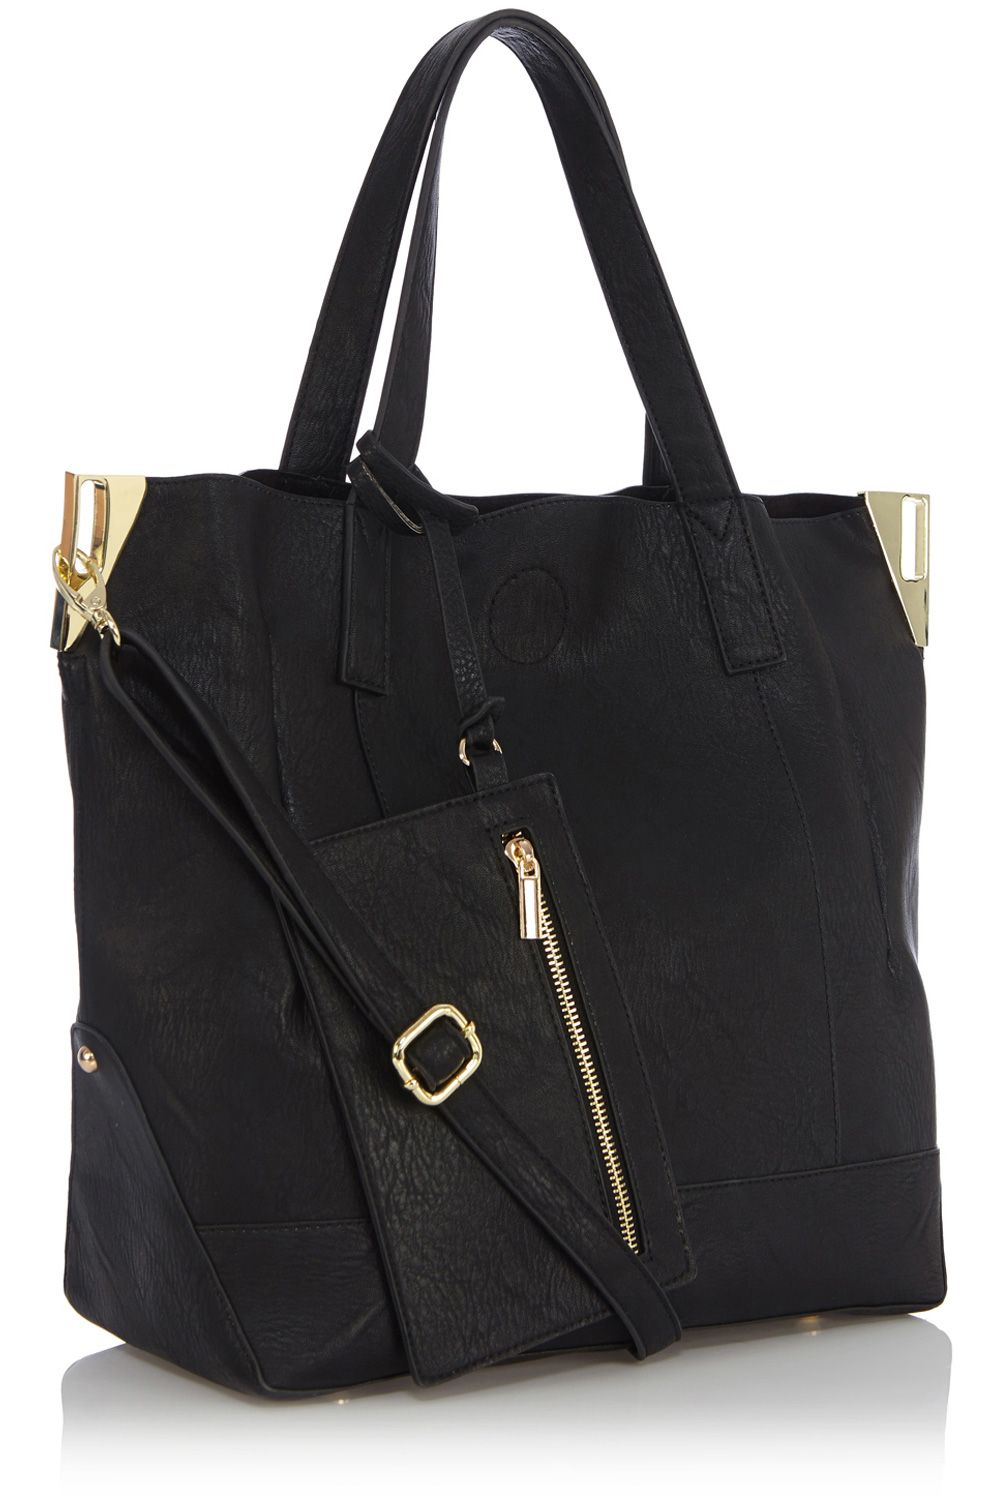 Sequoia shopper handbag